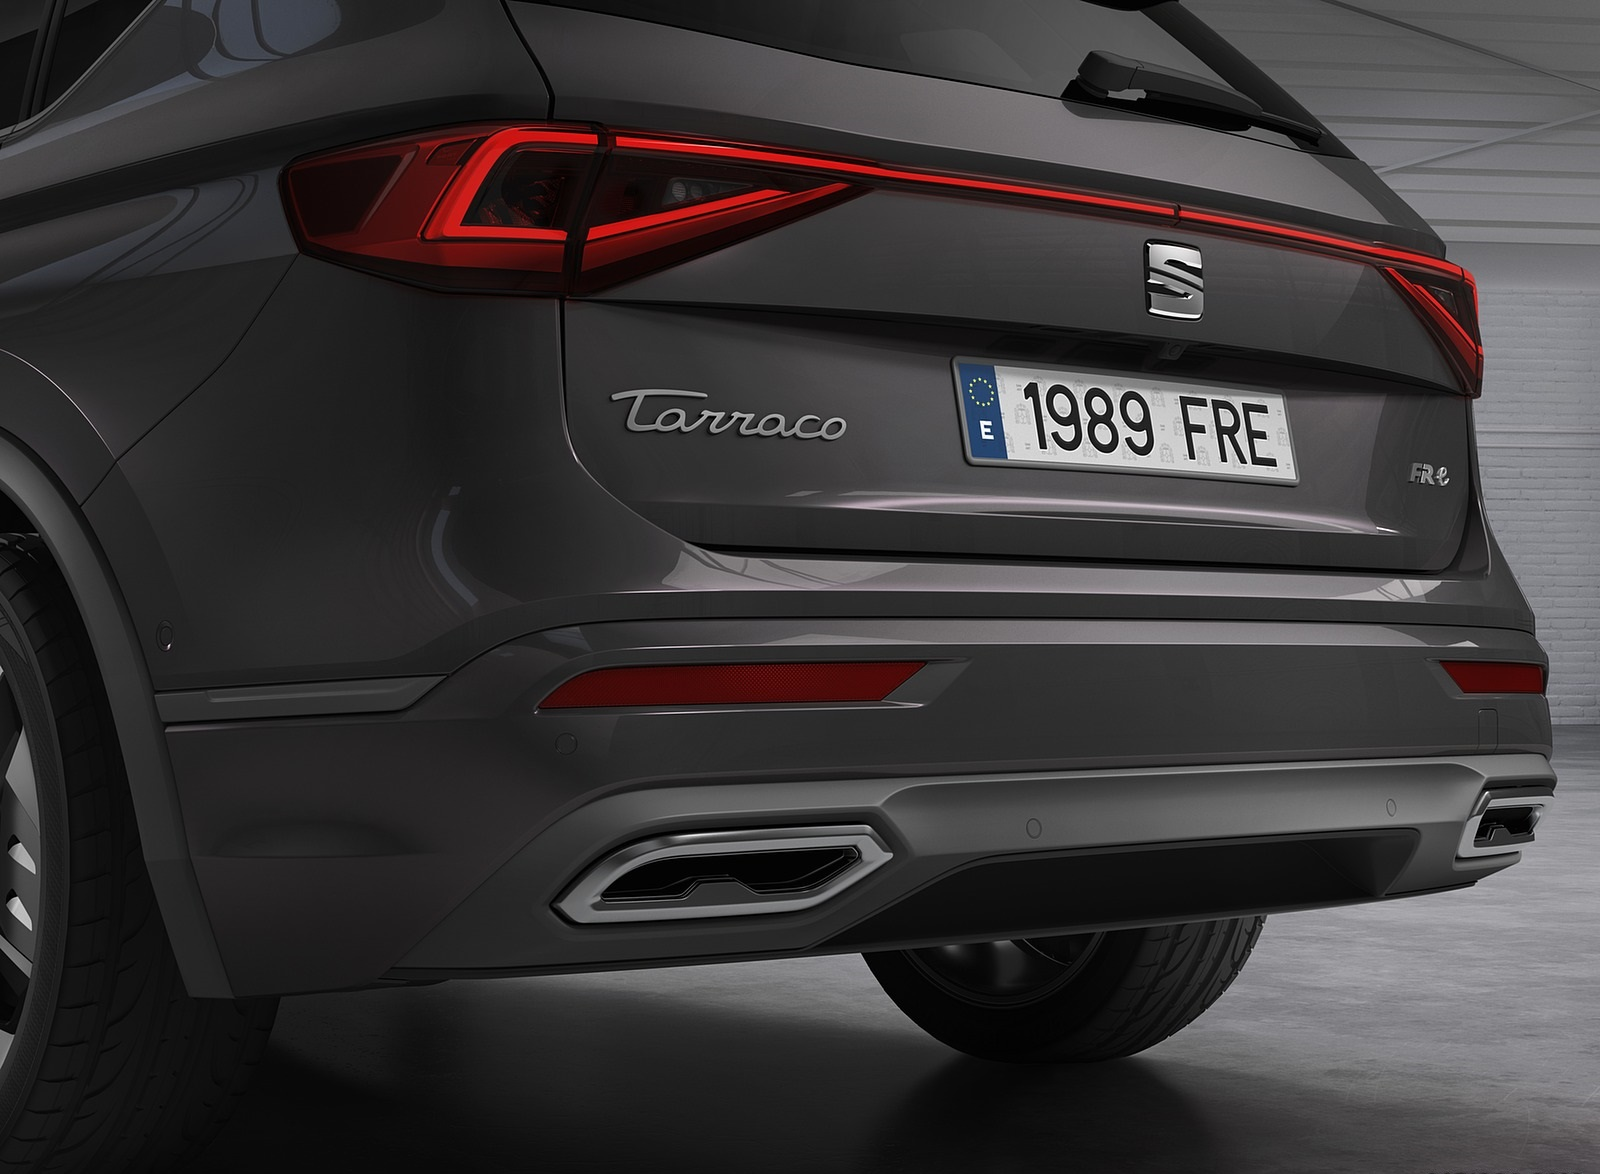 2020 SEAT Tarraco FR PHEV Tail Light Wallpapers (10)